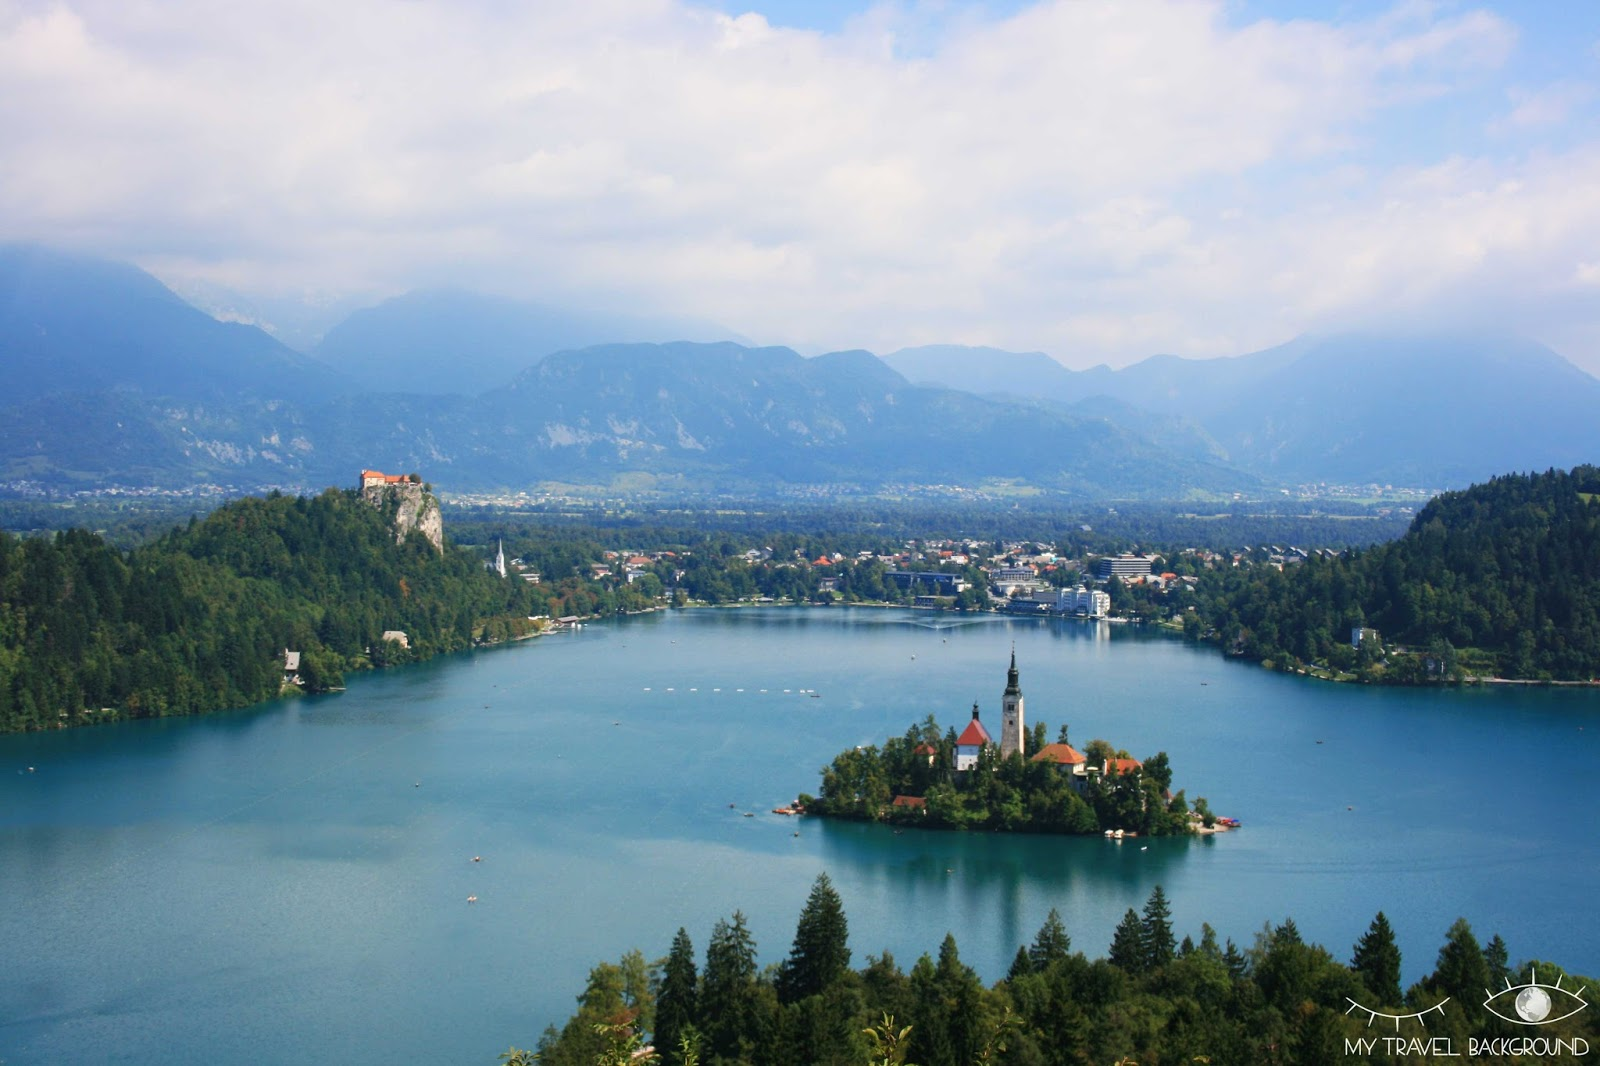 My Travel Background : mon Road Trip en Europe en train avec le pass Interrail, itinéraire, budget & co ! - Lac de Bled, Slovénie